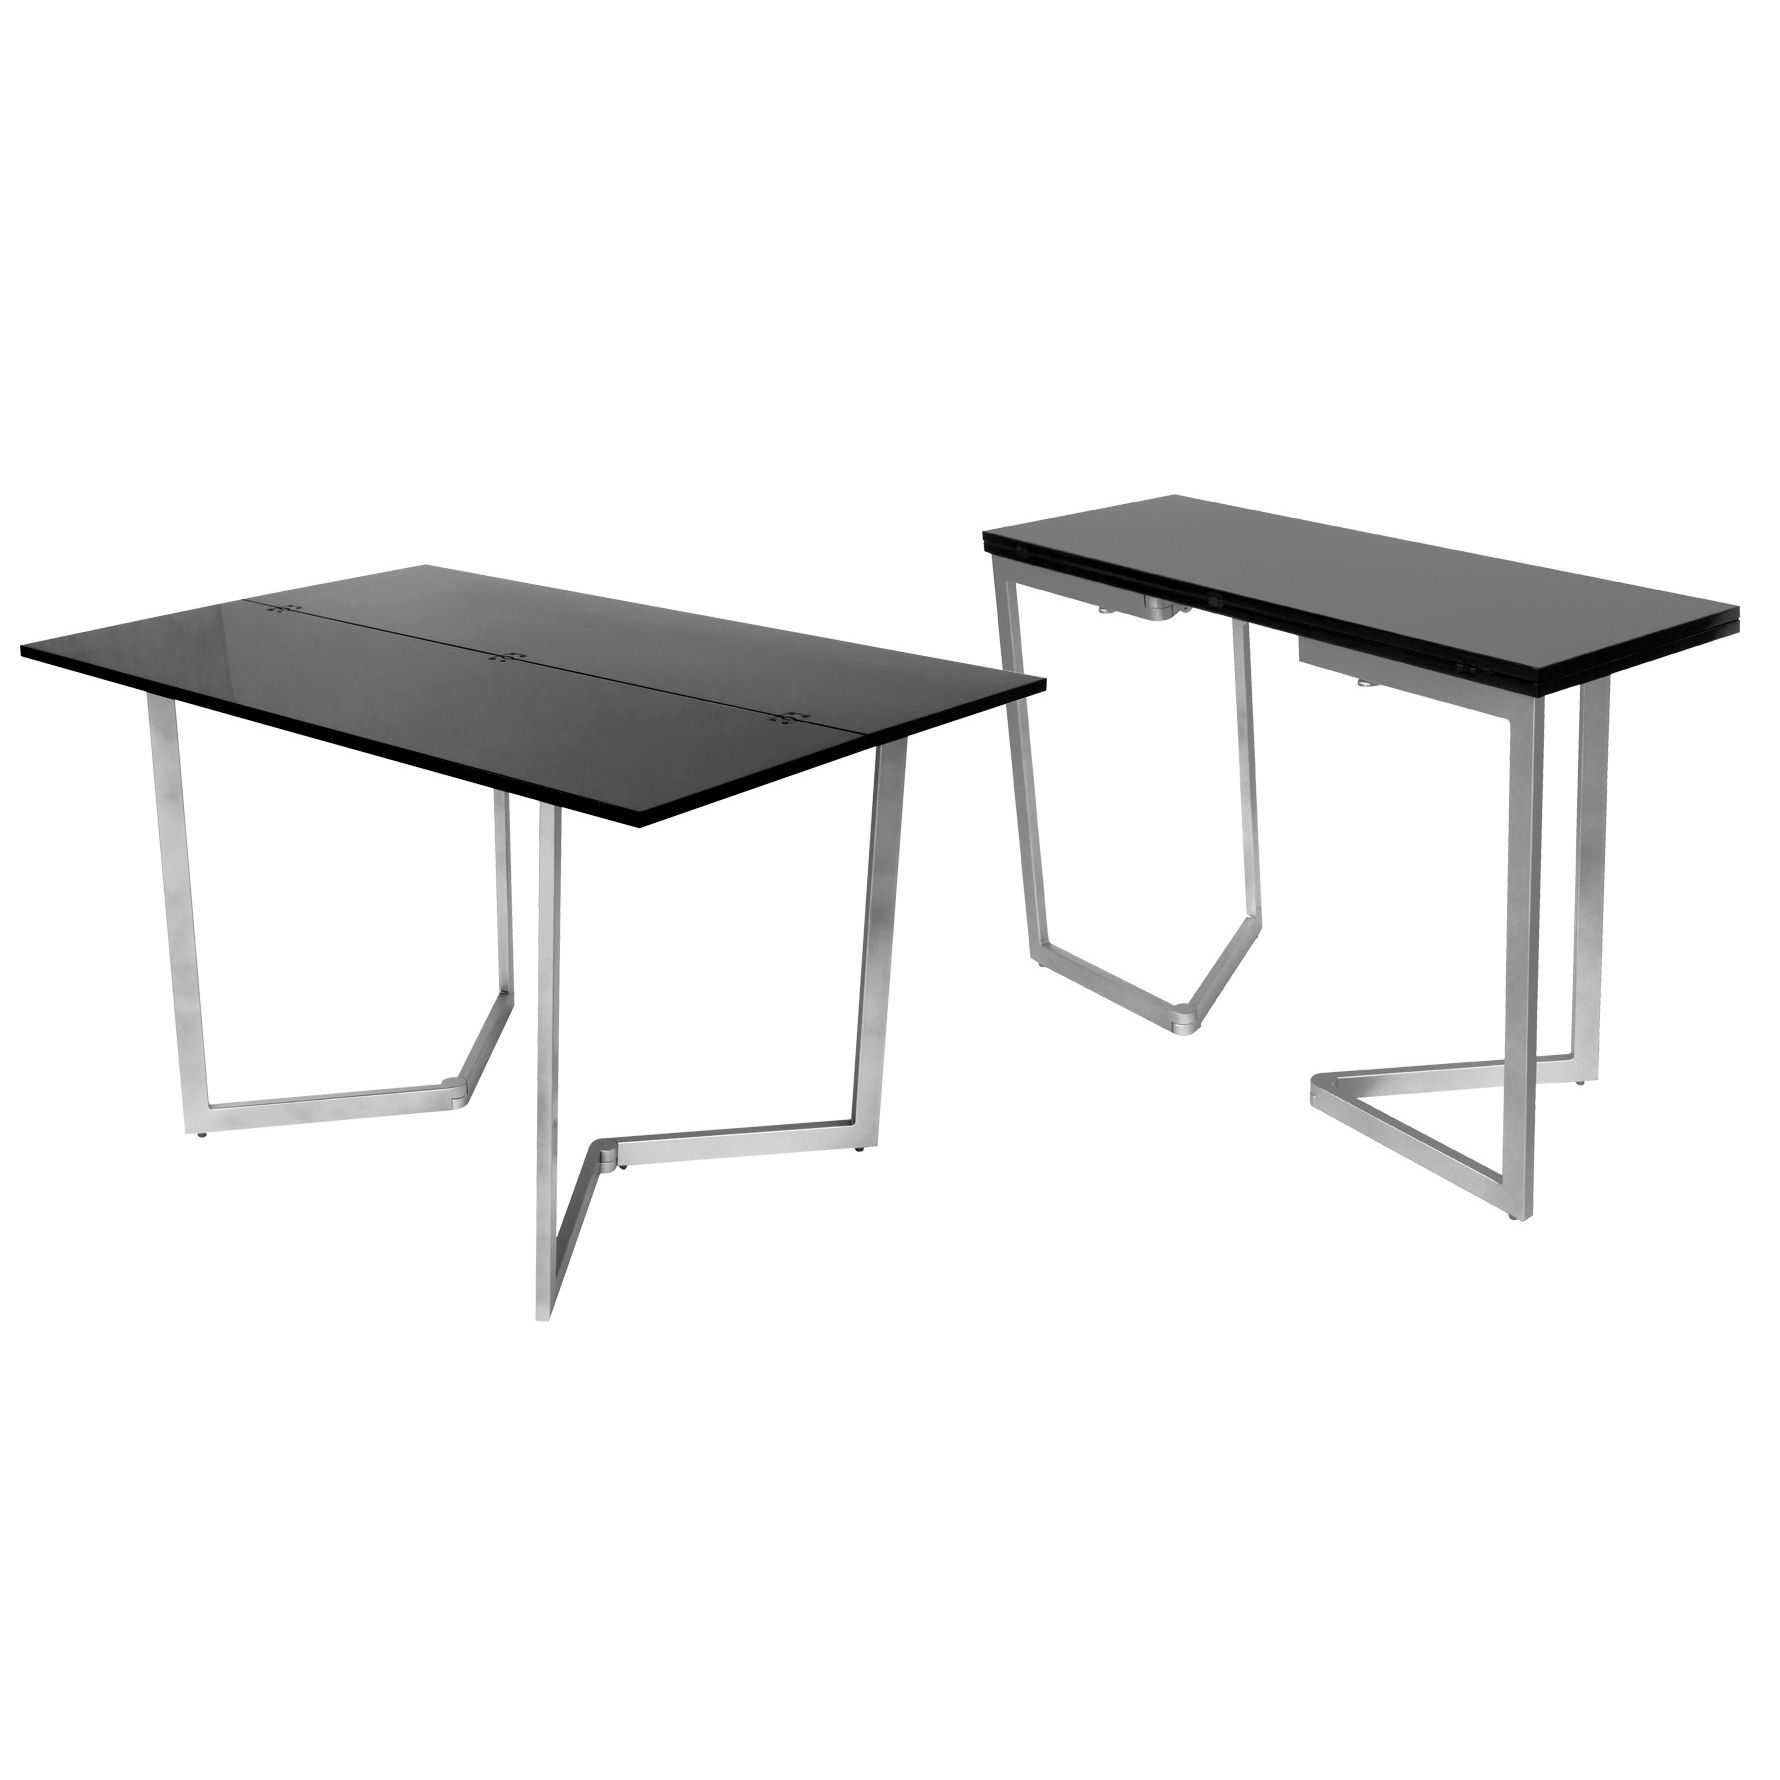 Deco in paris table console extensible noire laquee - Table console extensible noir ...